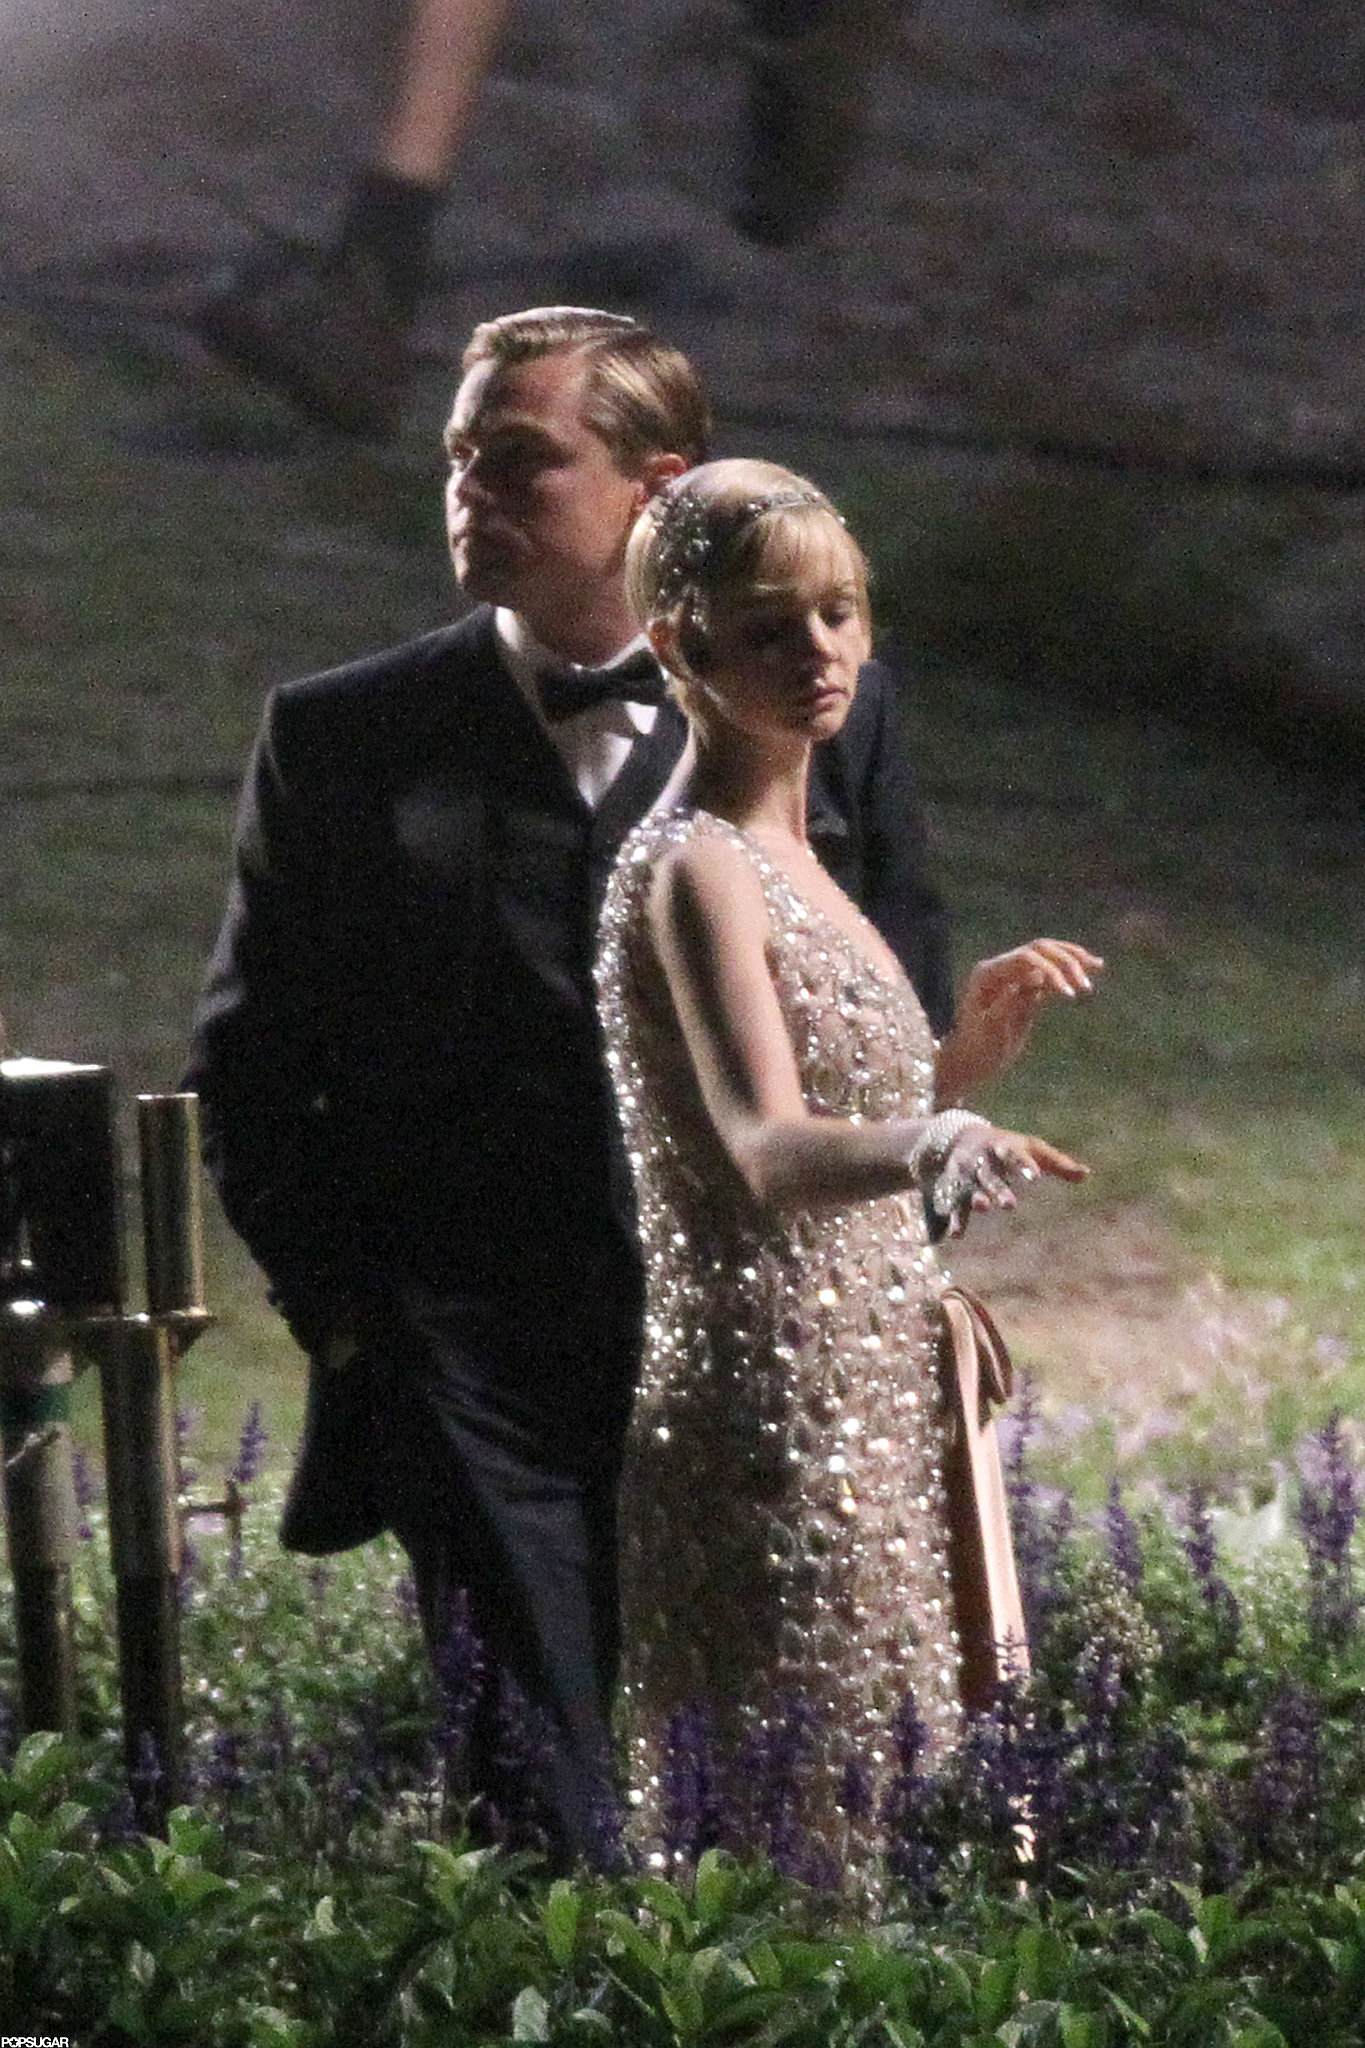 Leo filmed scenes for The Great Gatsby with Carey Mulligan in December 2011.